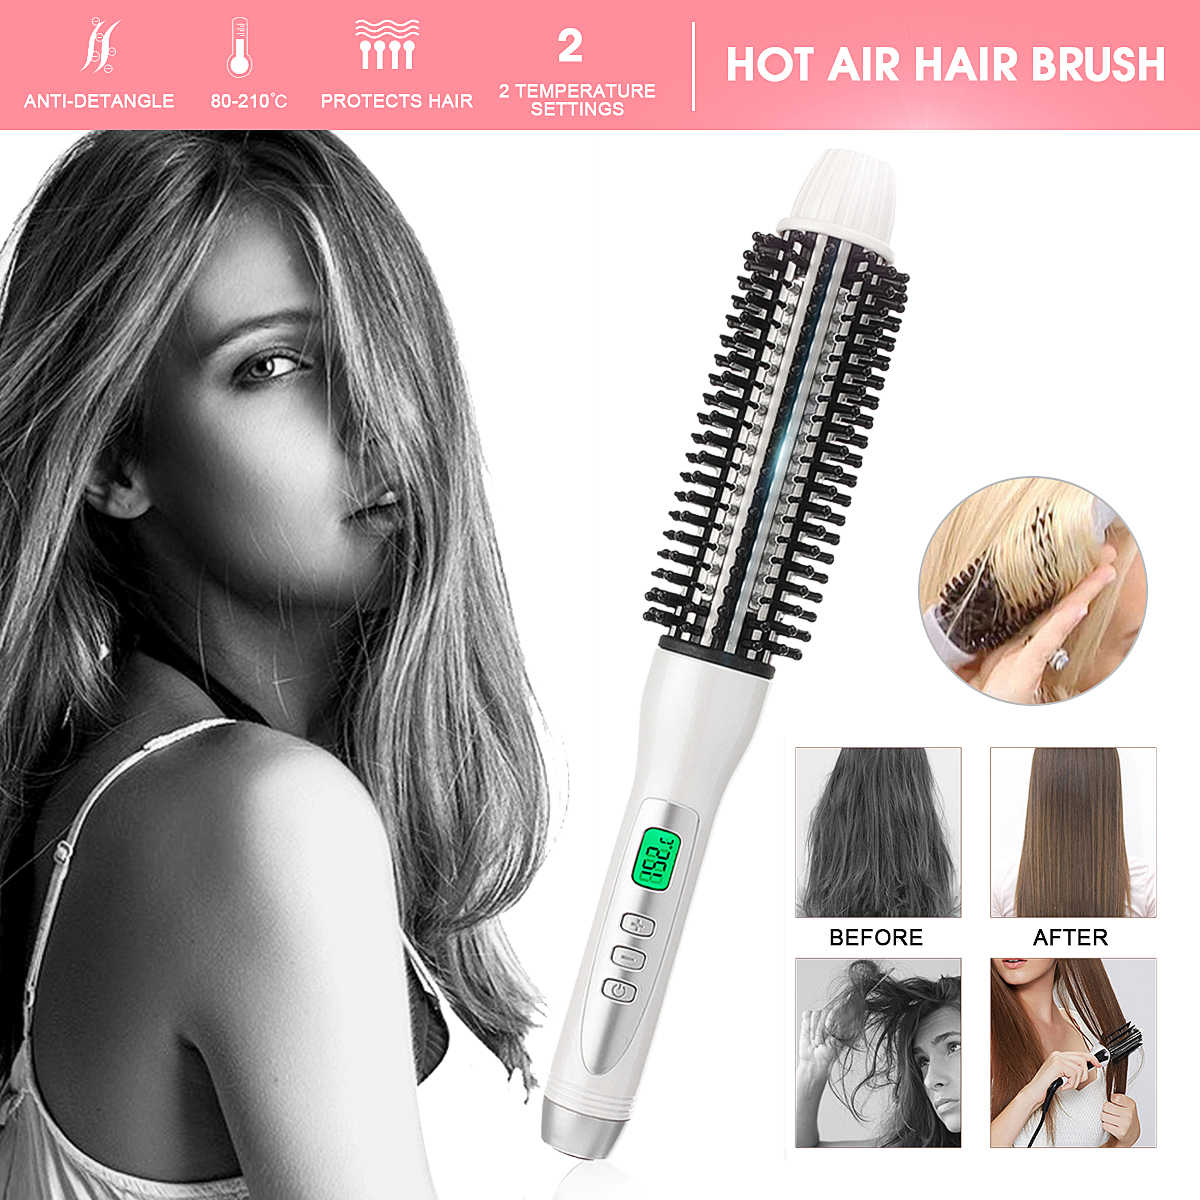 LCD Display Hair Curling Wand Curler Iron  Ceramic Anion Hair Curler Deep Hot Air Brush Heating Roller Styler Hair Care Tools